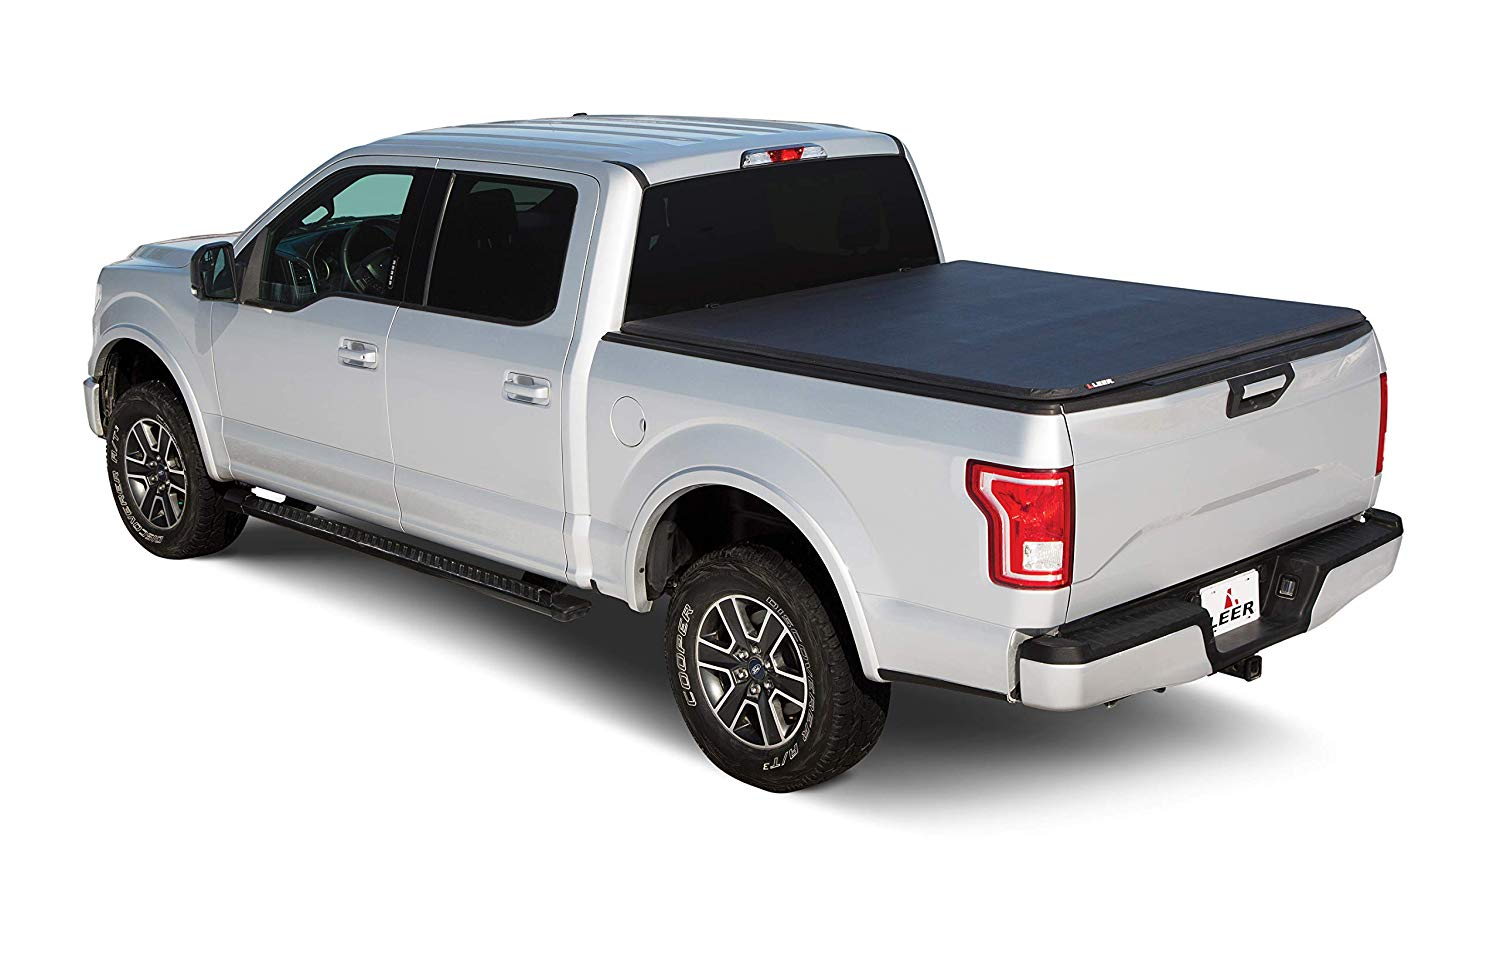 Nissan Frontier Bed Size >> Cheap Truck Bed Covers Nissan Frontier Find Truck Bed Covers Nissan